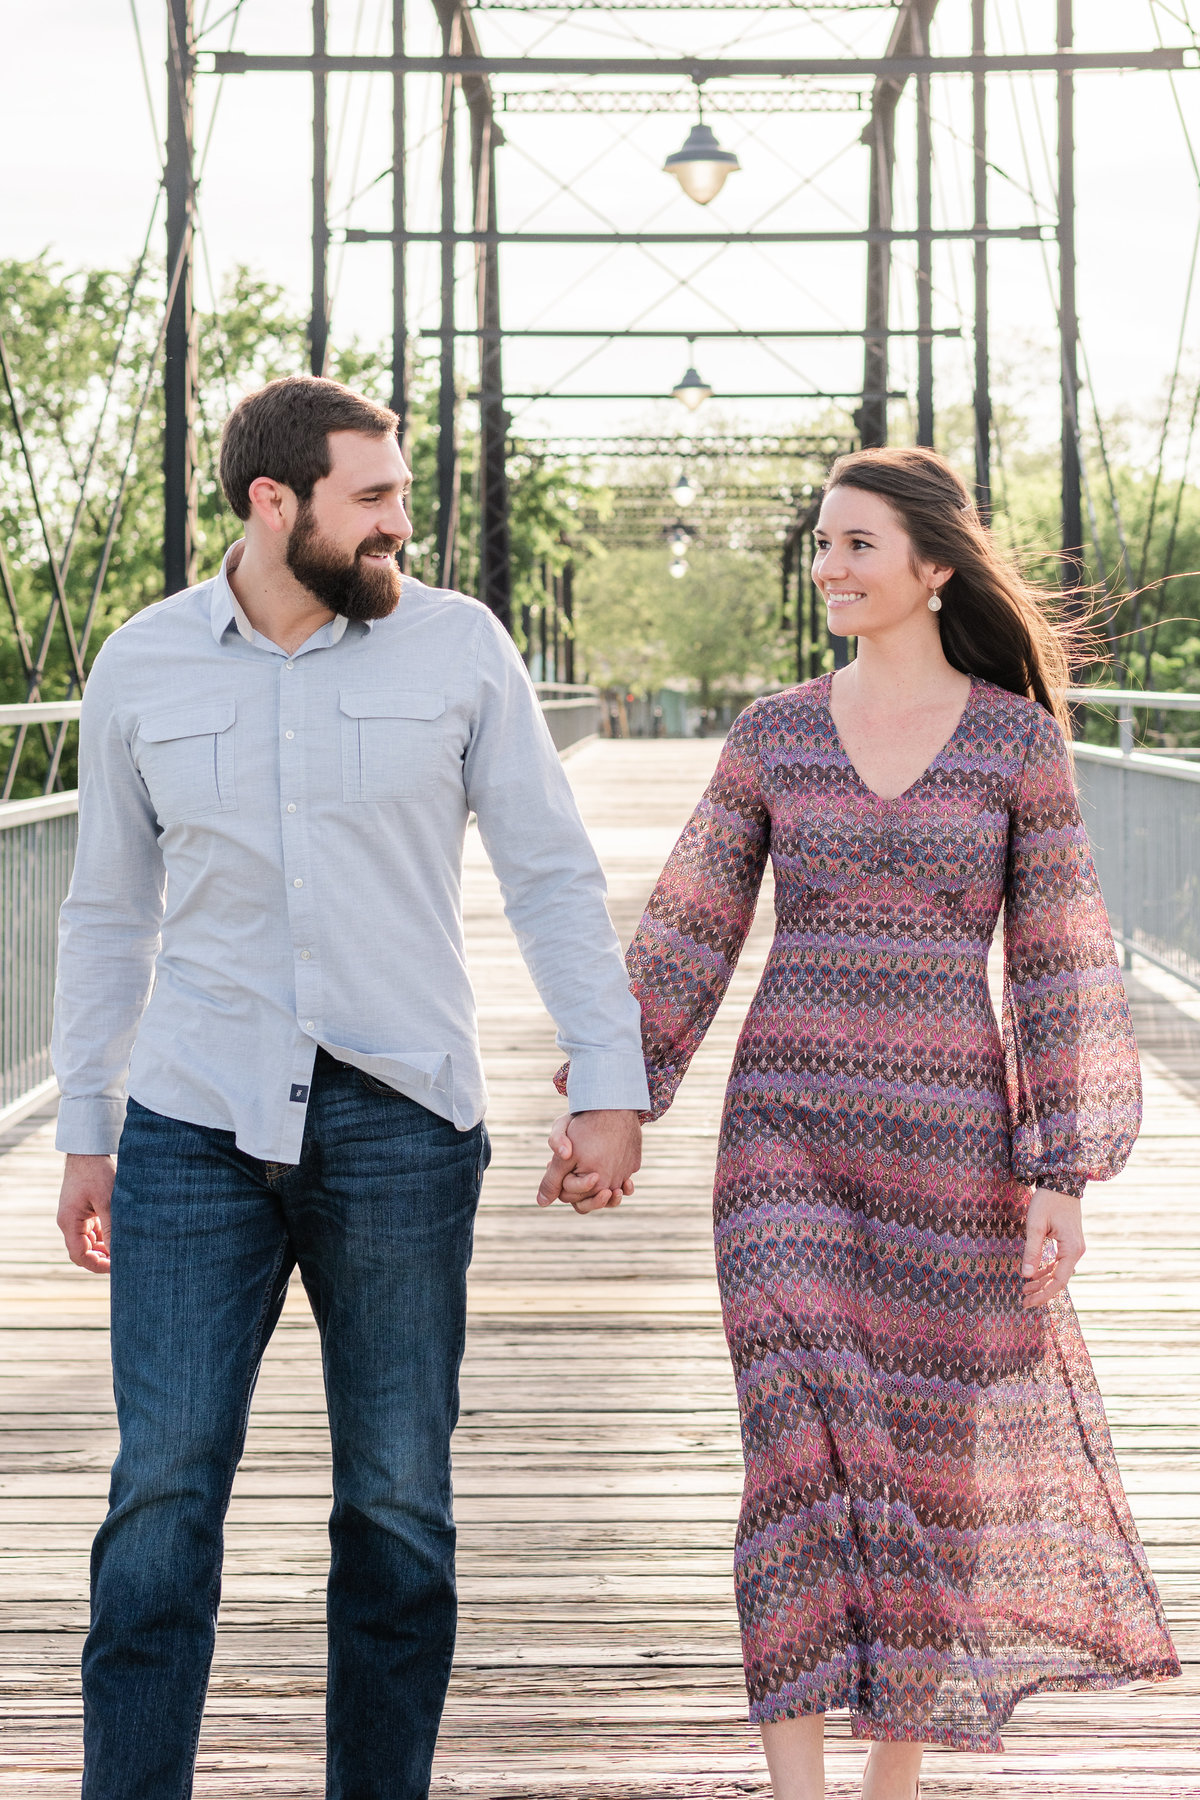 Faust Street Engagement | Holly + Cristian 005